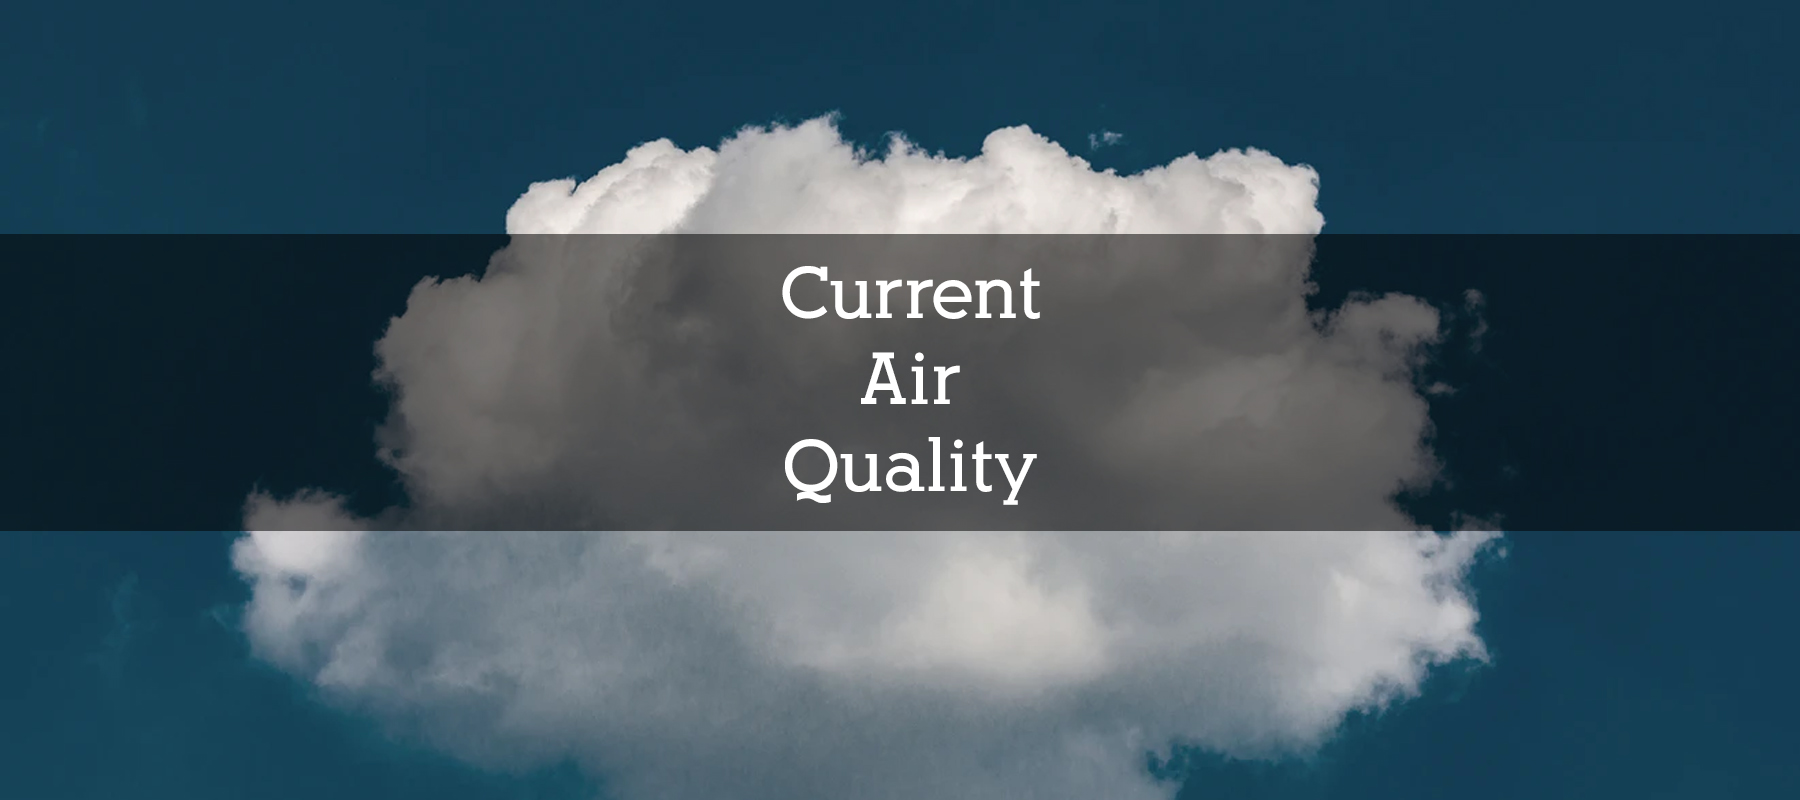 Current Air Quality in Colorado